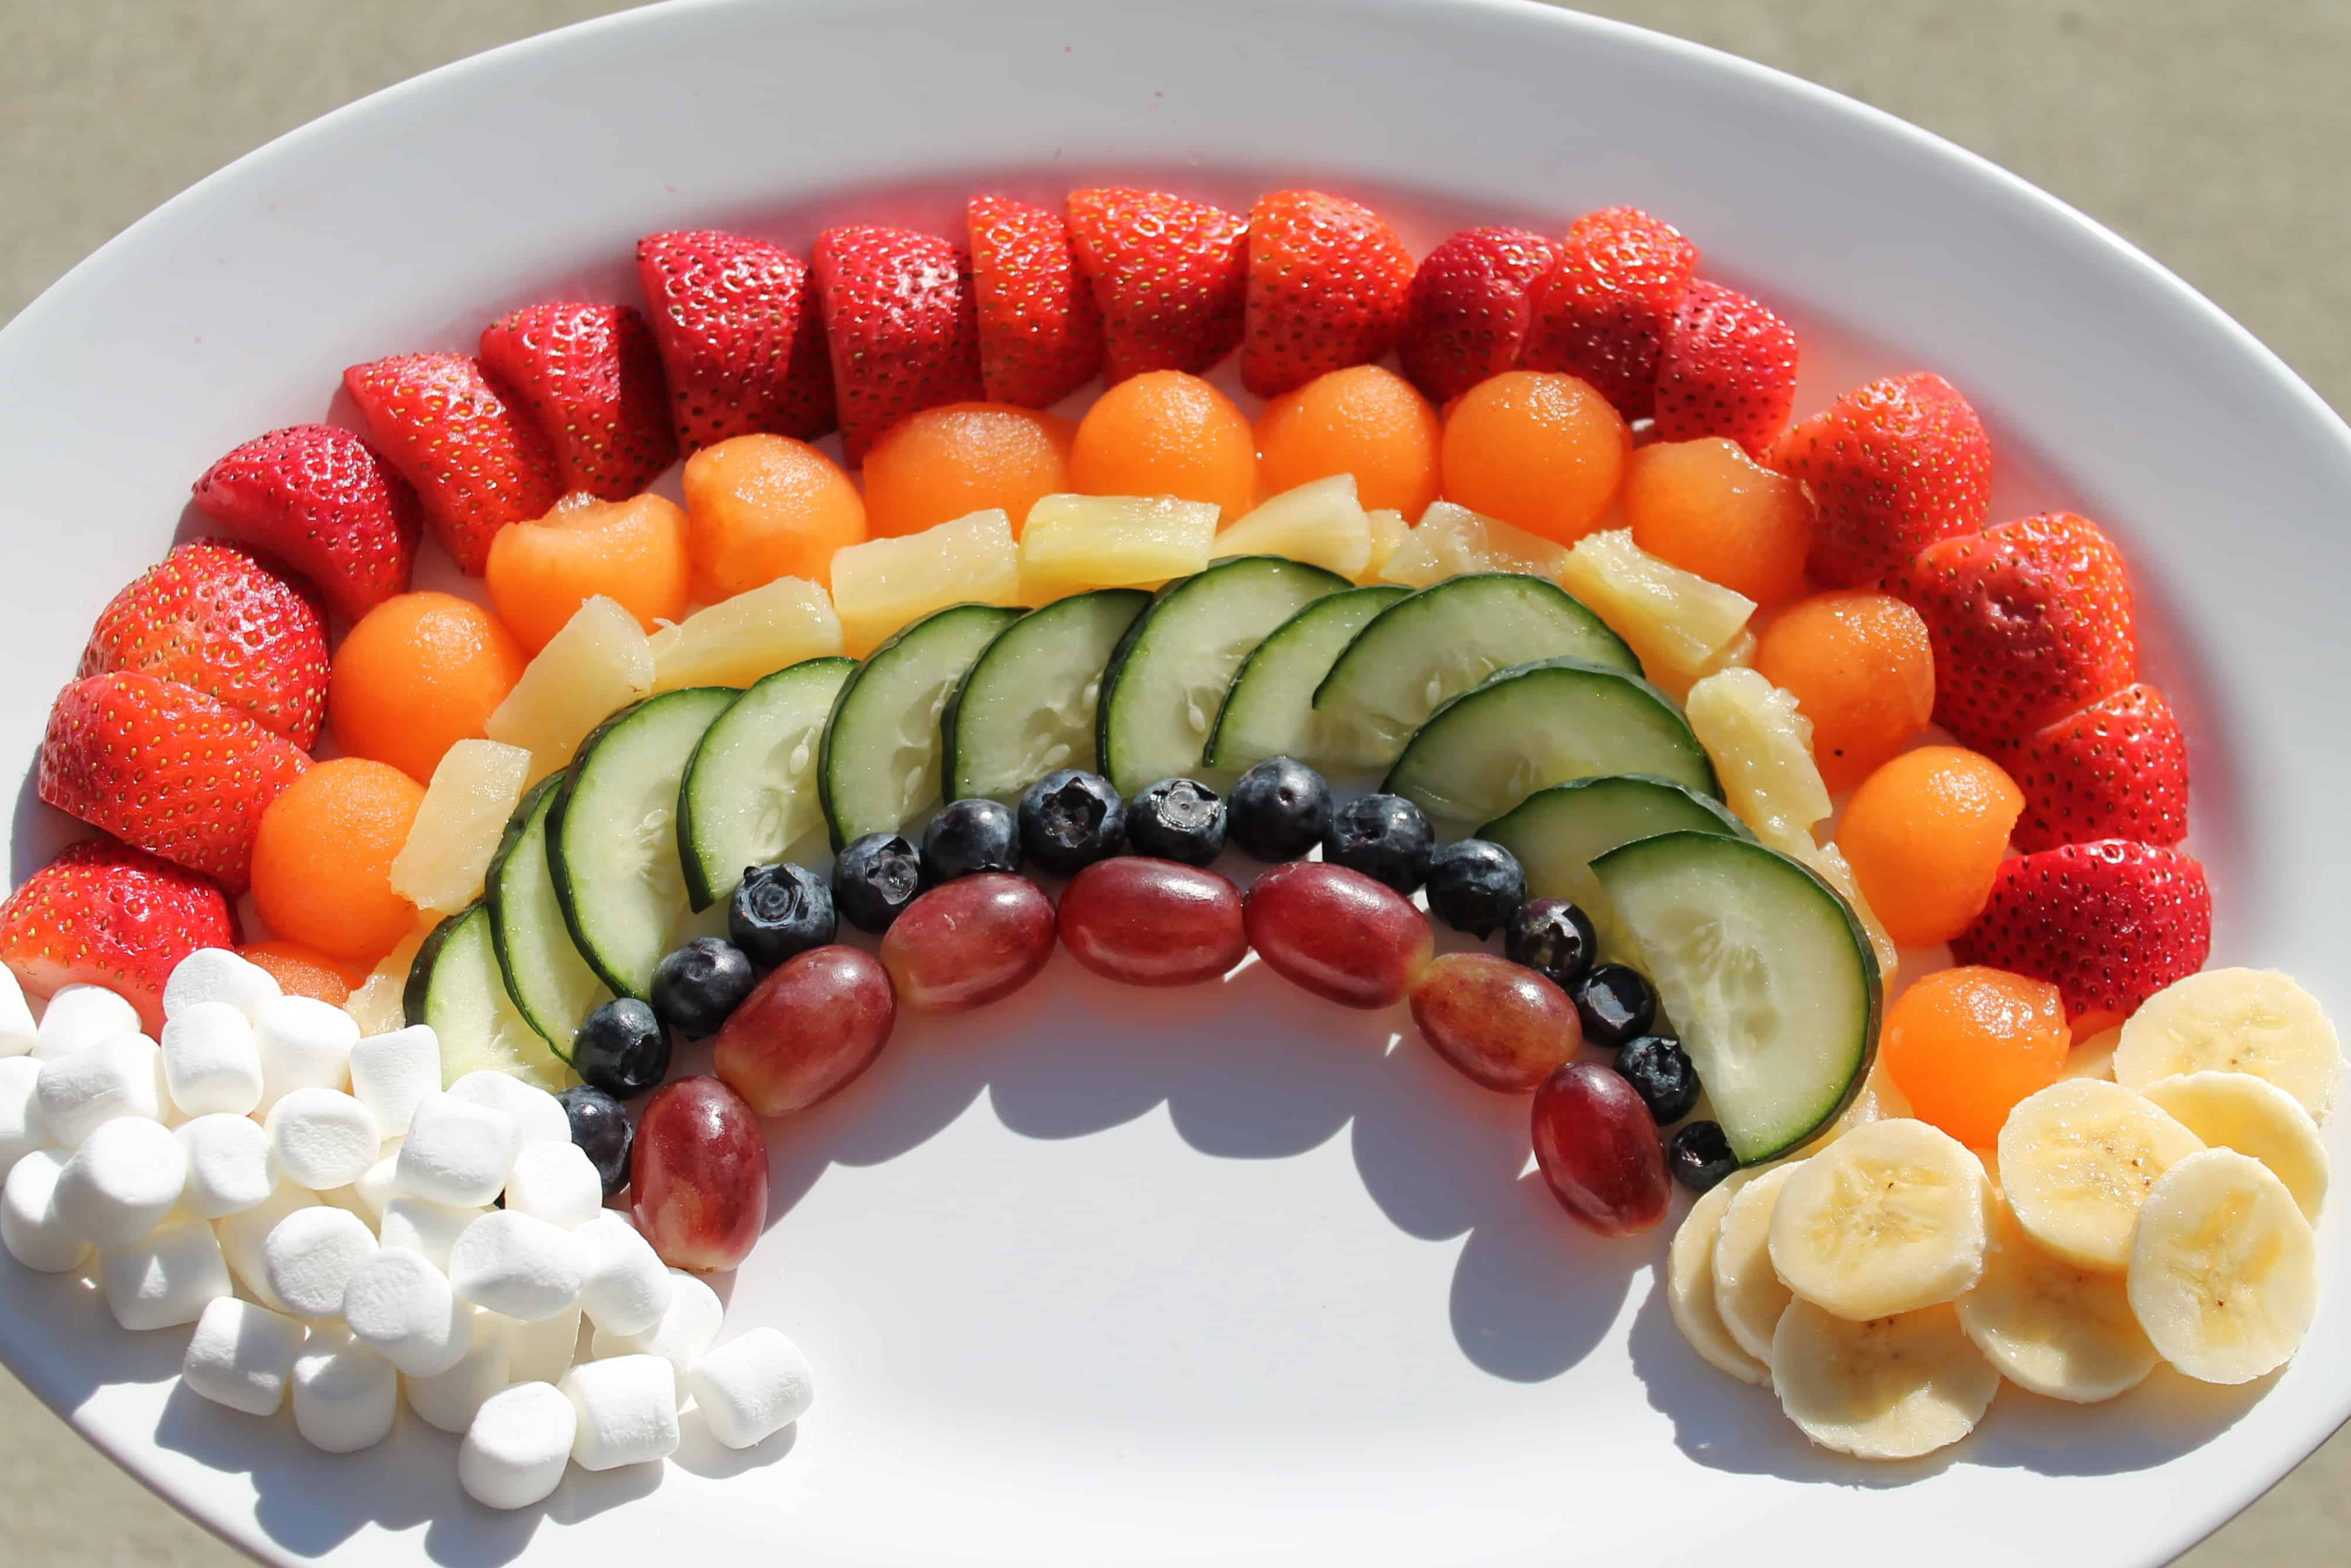 Fruits and Vegetables – charcuterie plate